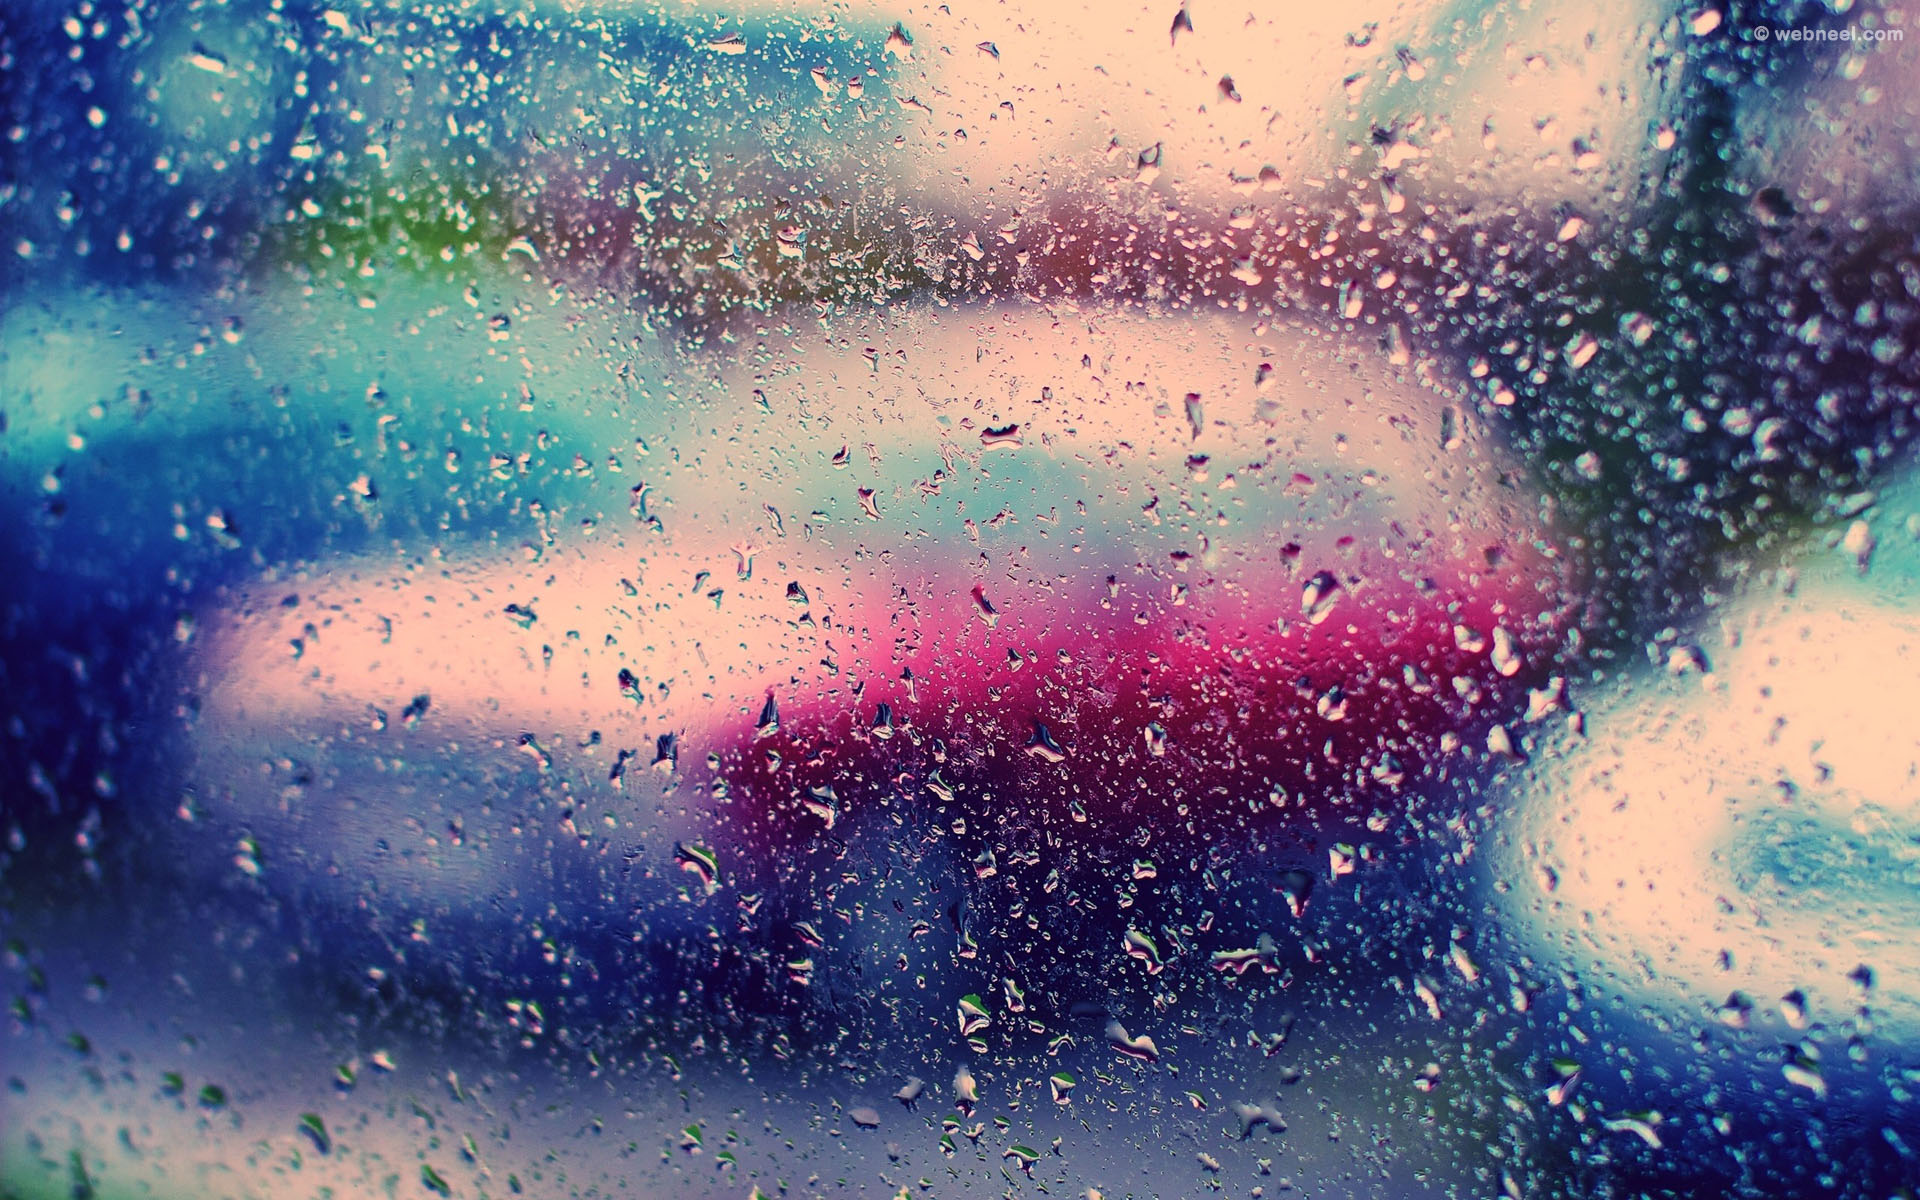 50 Beautiful Rain Wallpapers For Your Desktop Mobile And